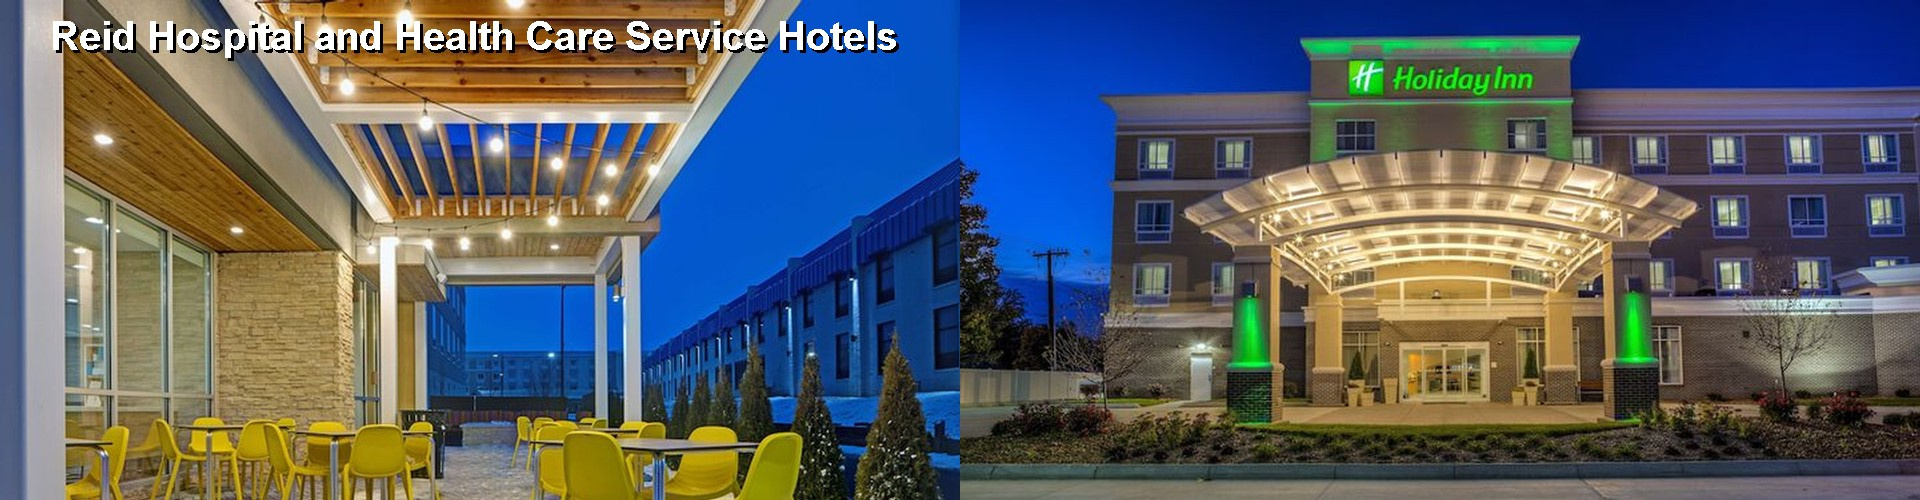 5 Best Hotels near Reid Hospital and Health Care Service